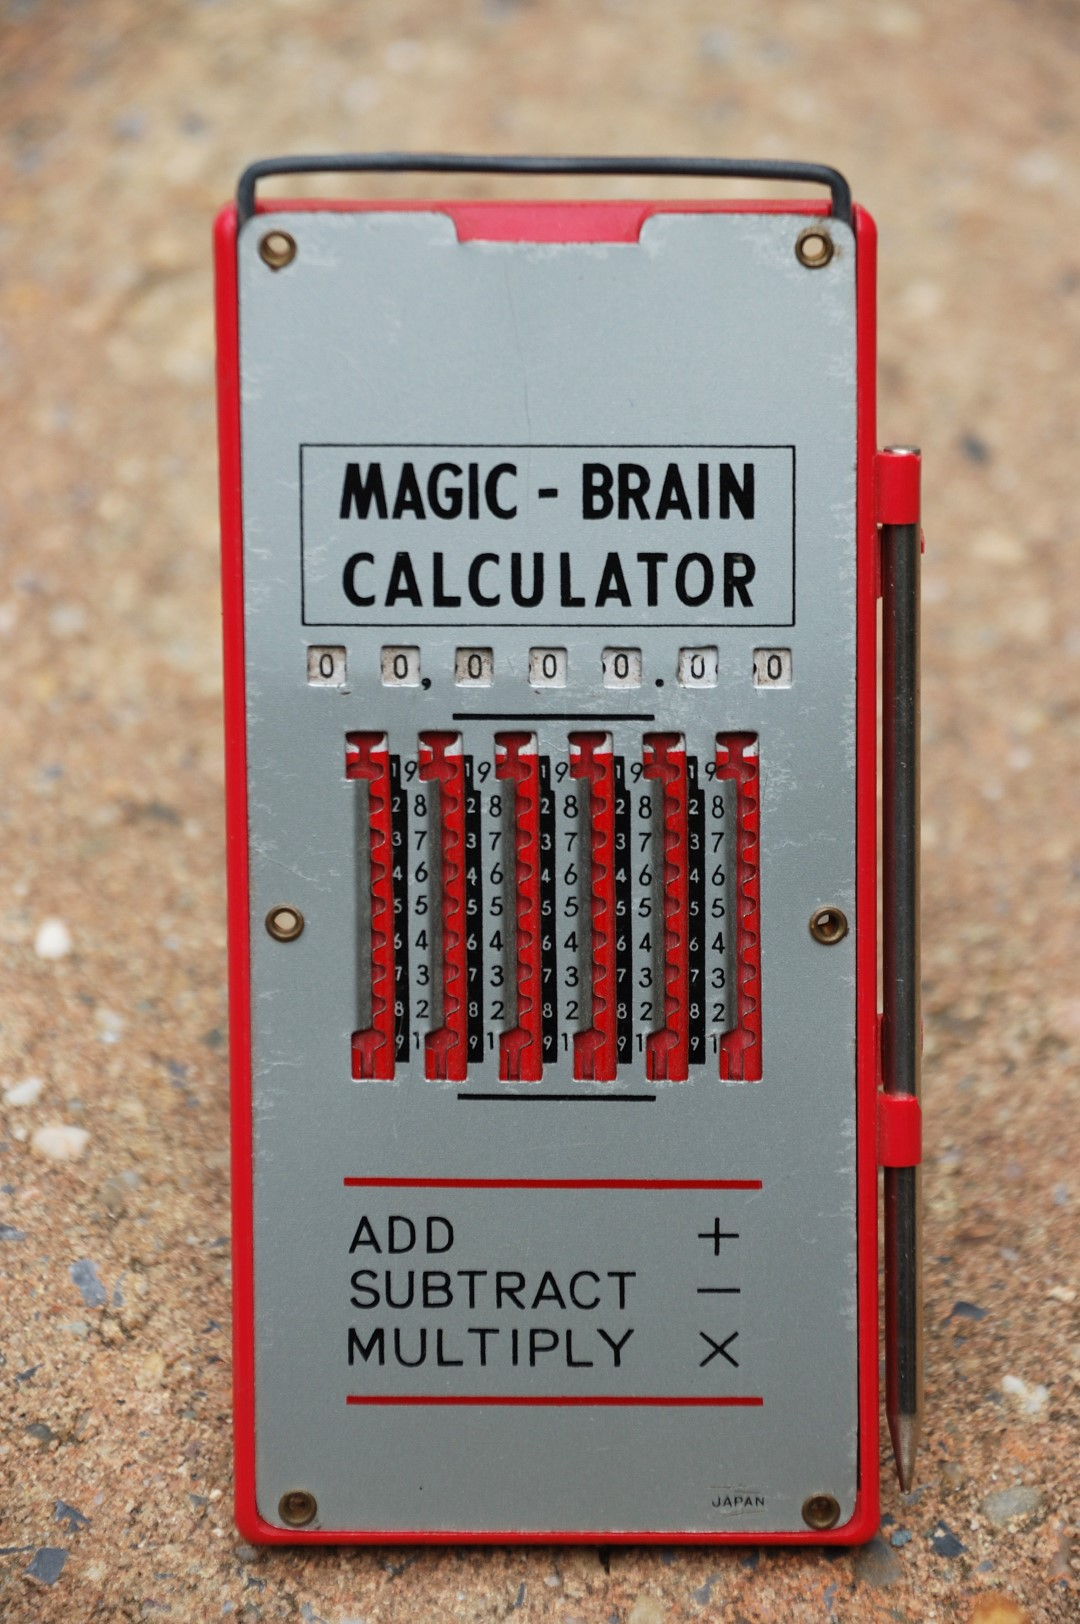 Magig Brain Calculator